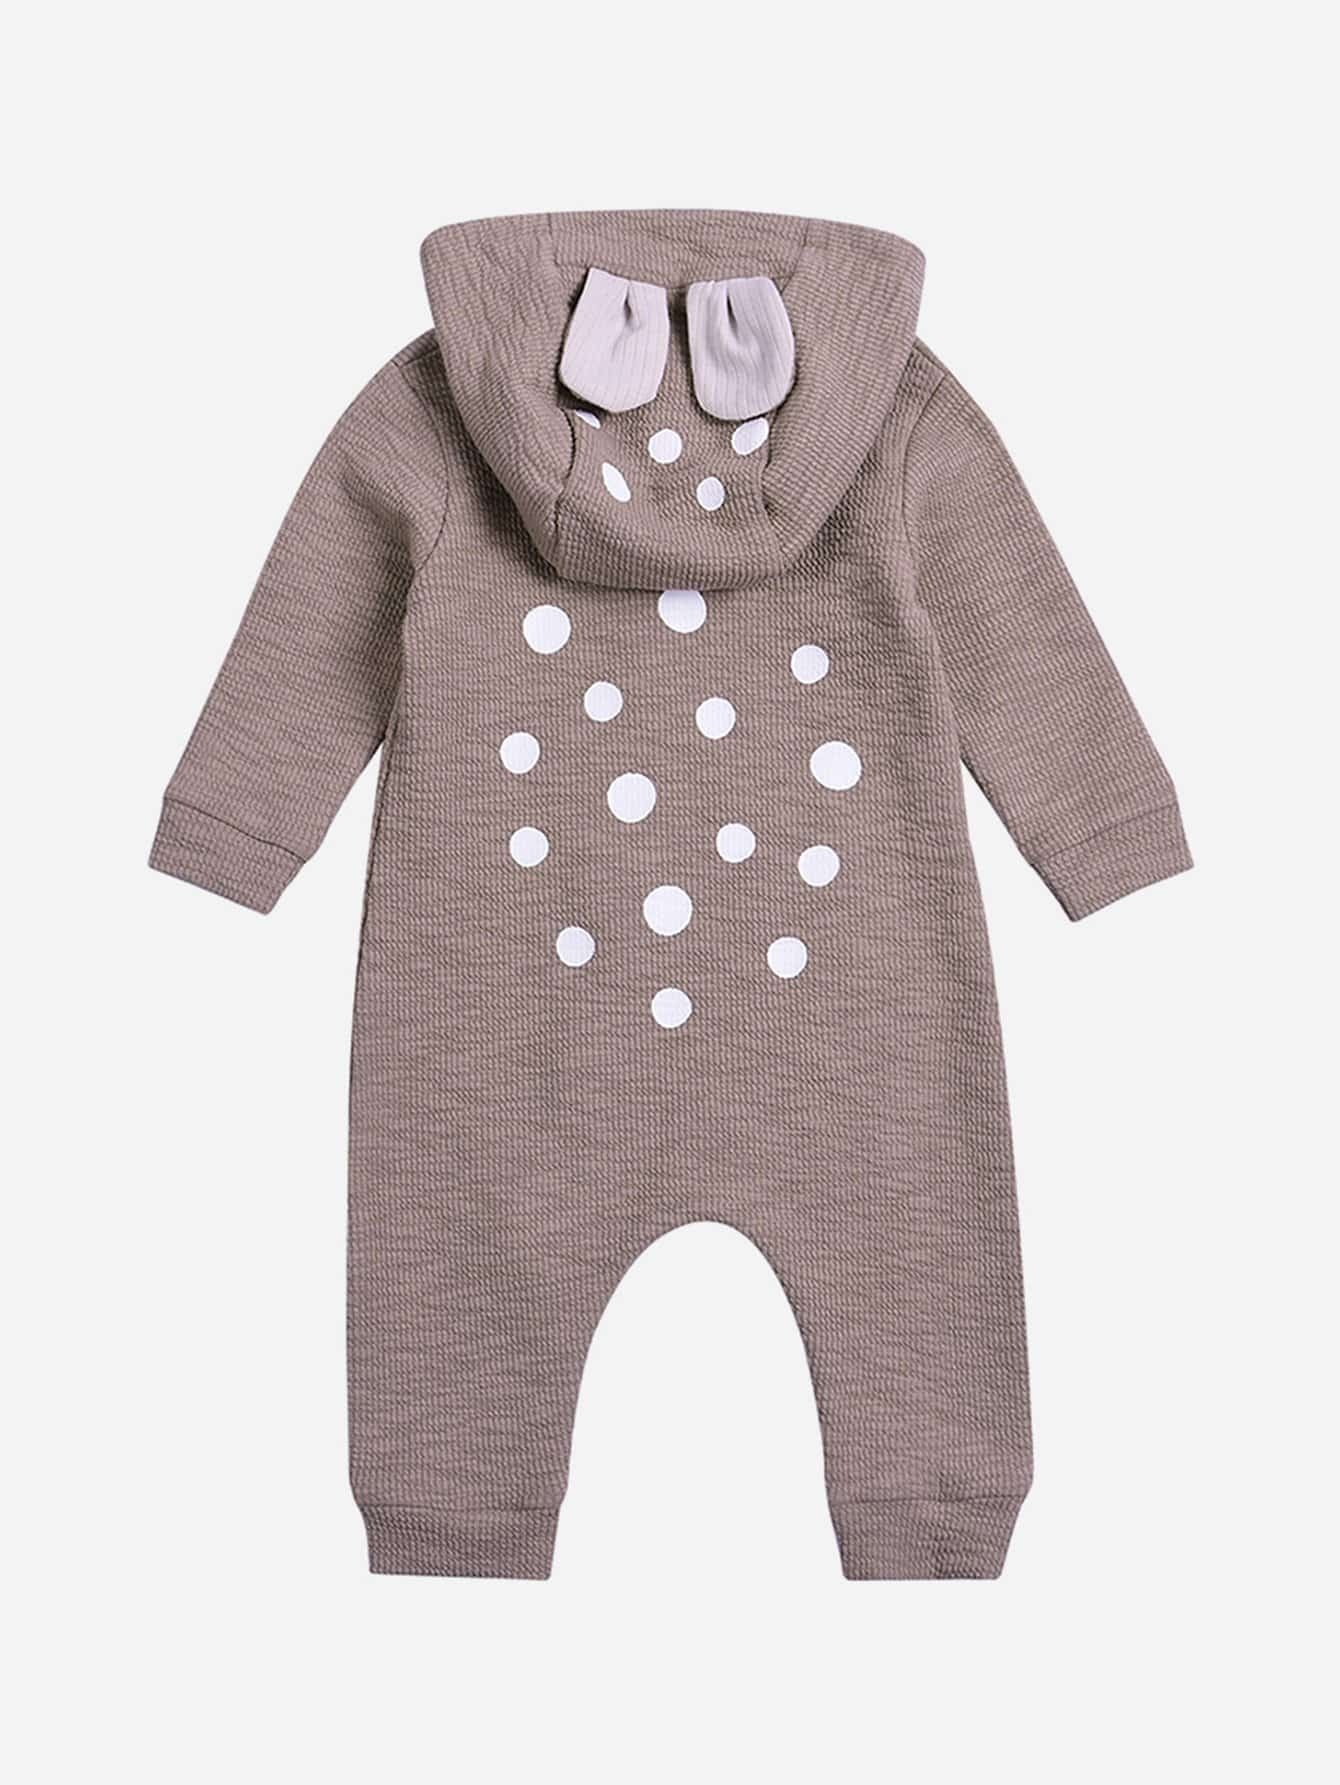 Boys Baby Bear Romper cotton newborn infant kids baby boy girl romper jumpsuit clothes outfit baby bear toddler children rompers